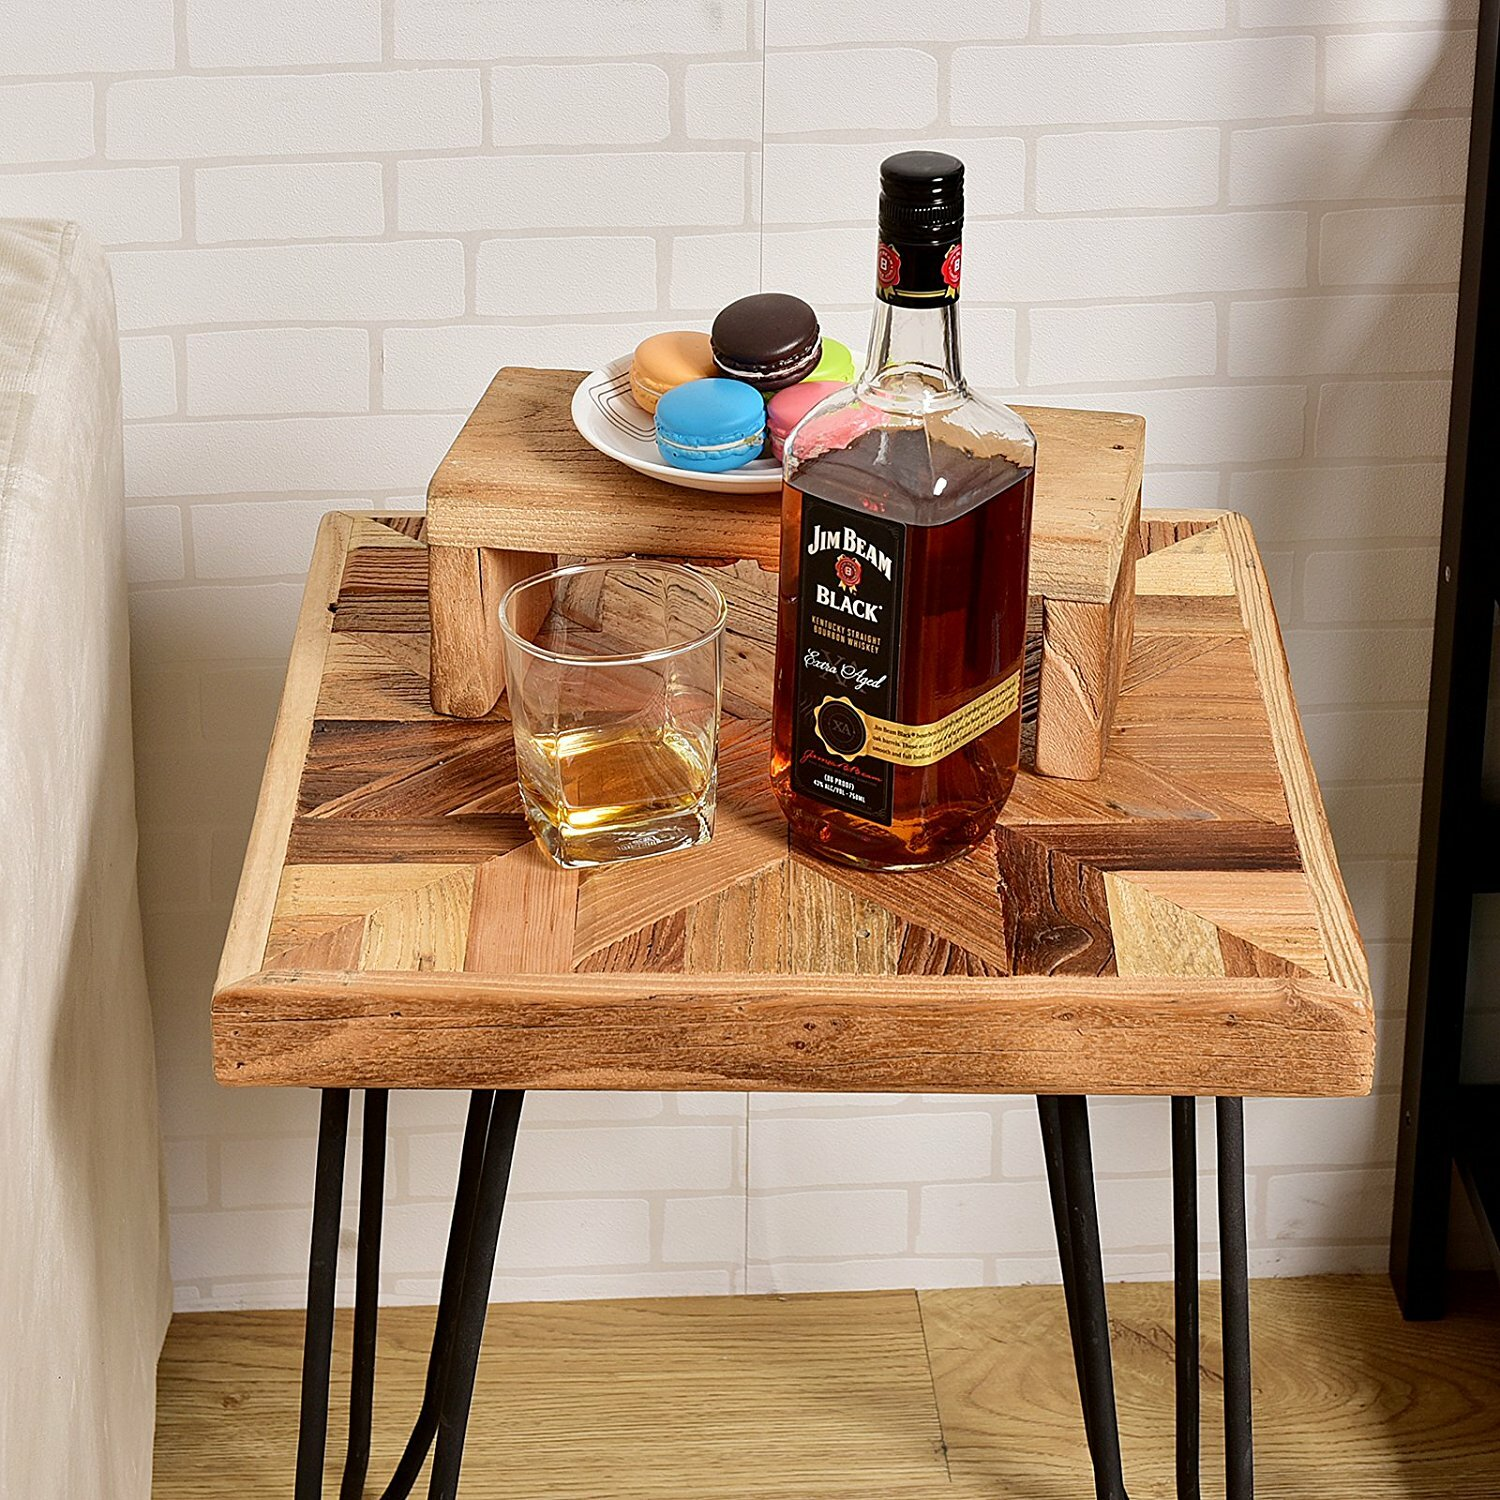 Welland industries llc old elm wood end table reviews for Abanos furniture industries decoration llc